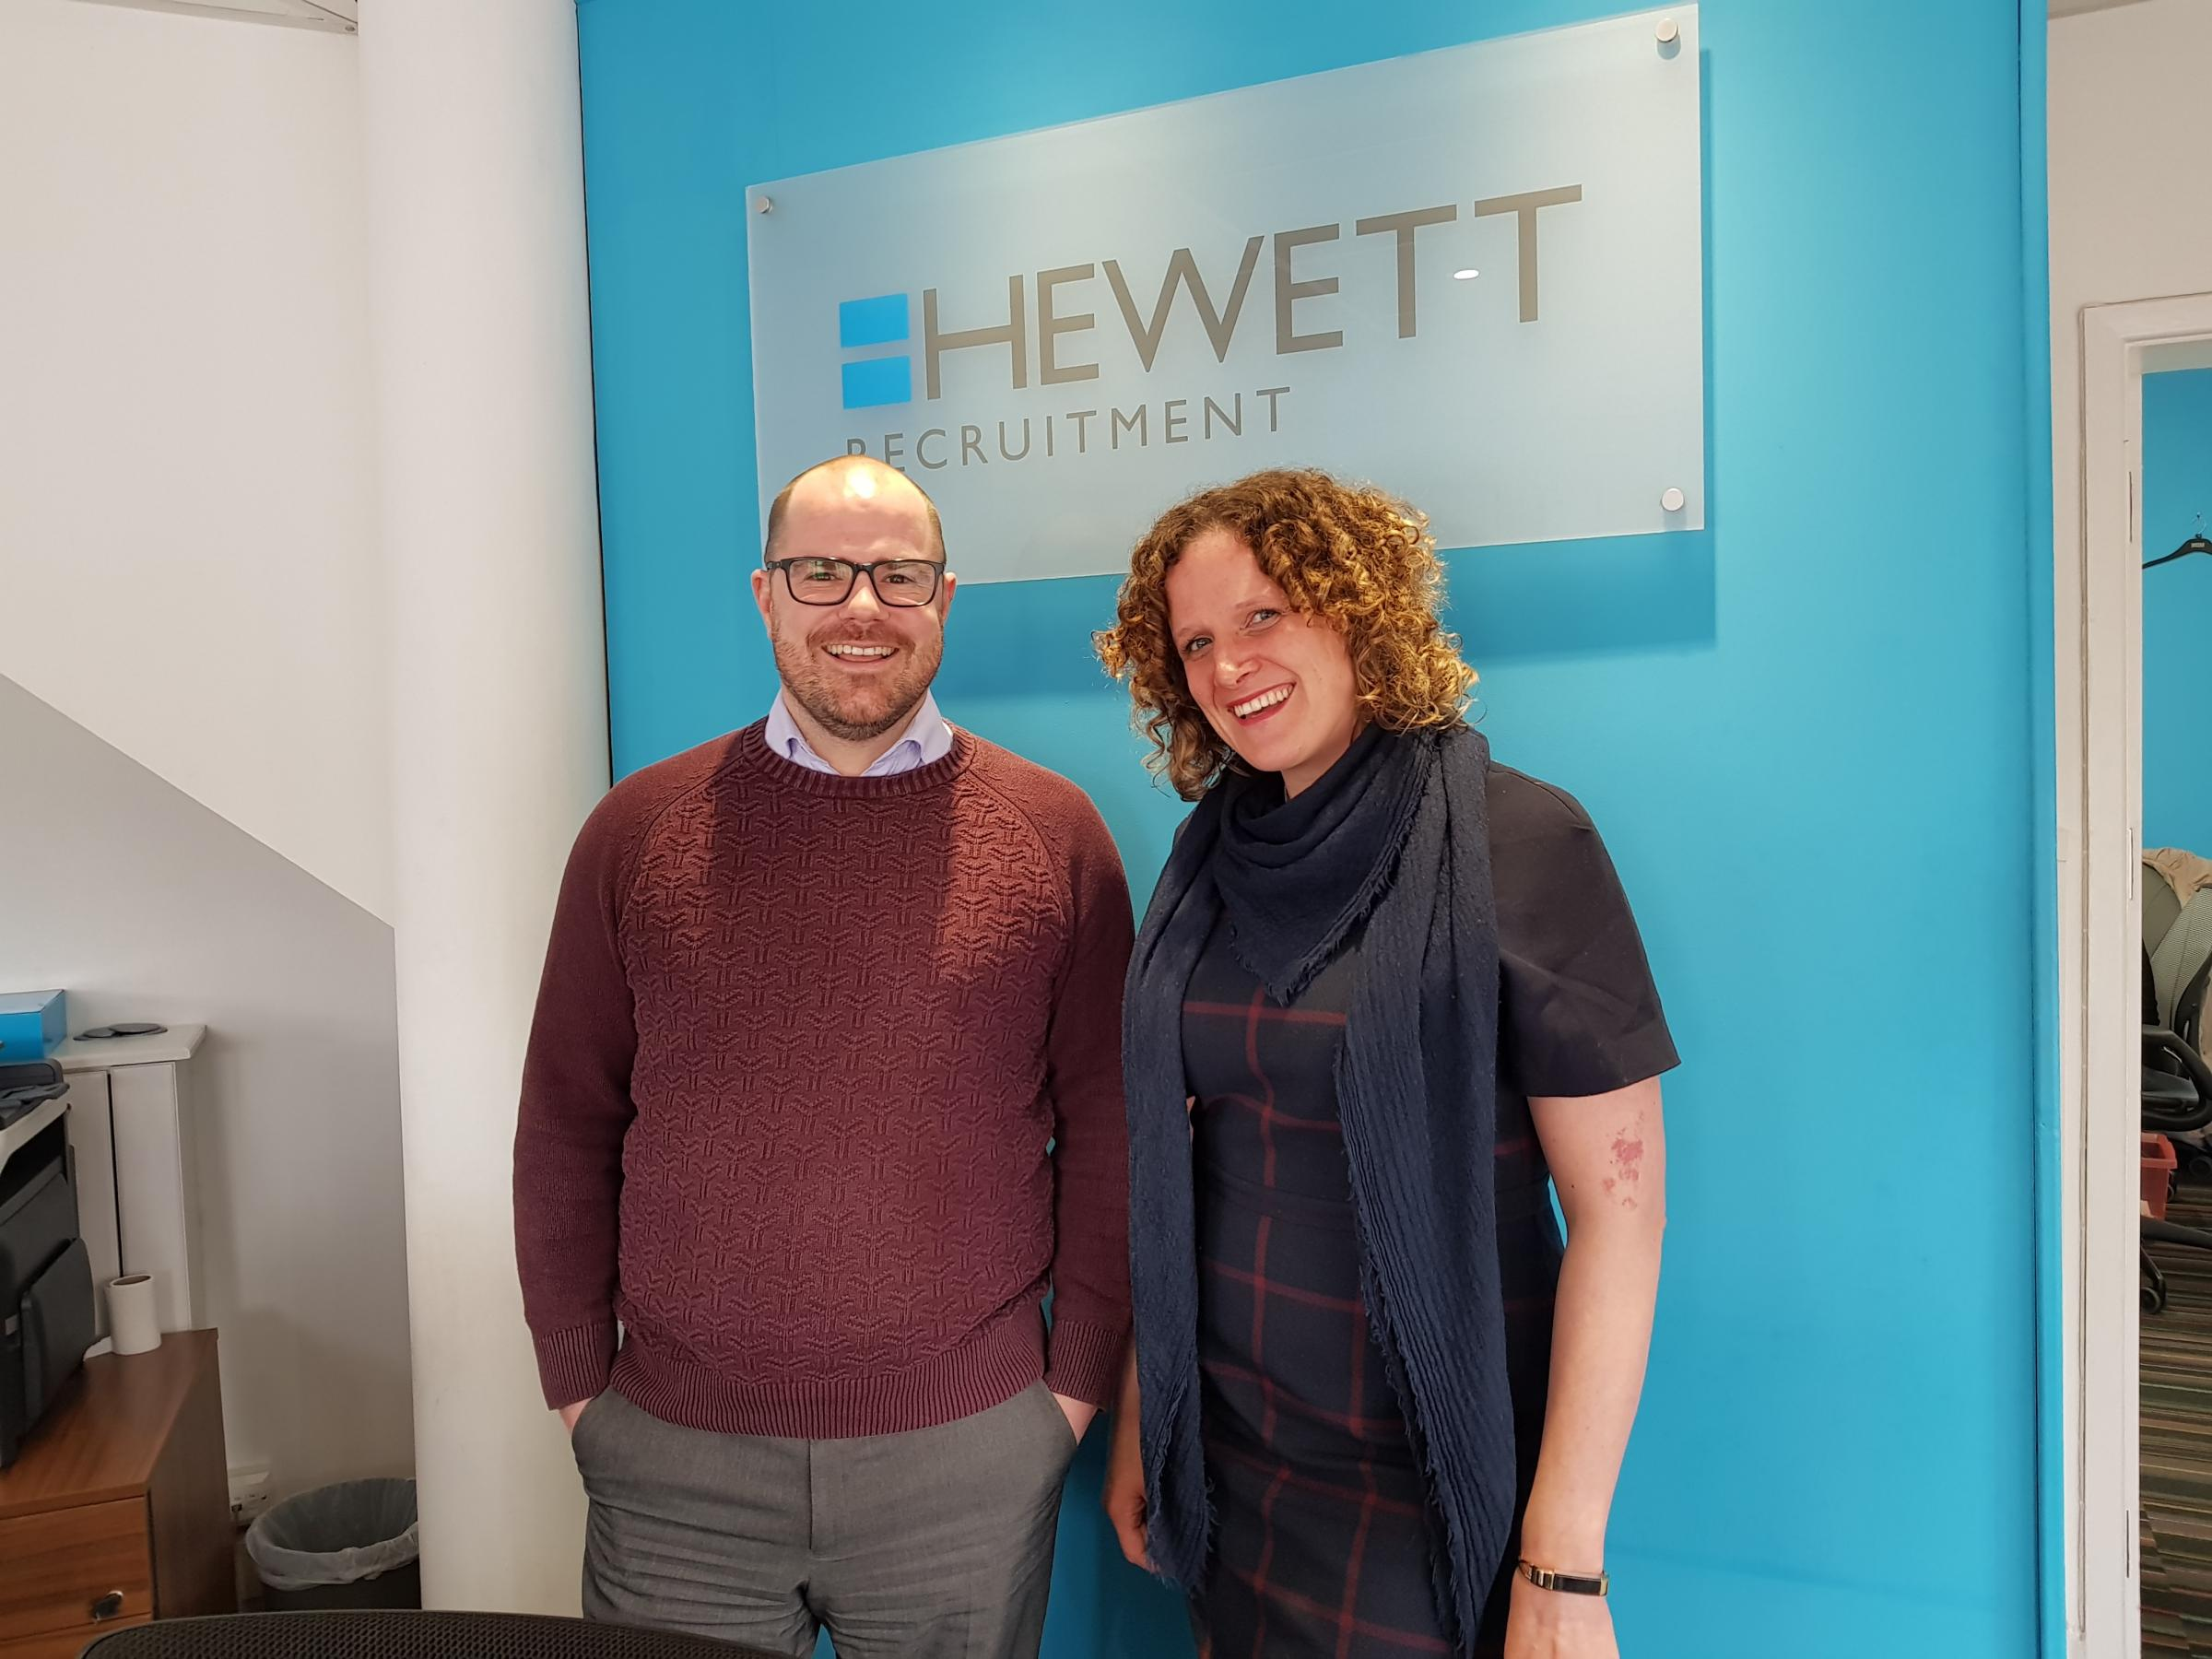 FRIENDS: Laura Hewett and Ben Mannion from Hewett Recruitment